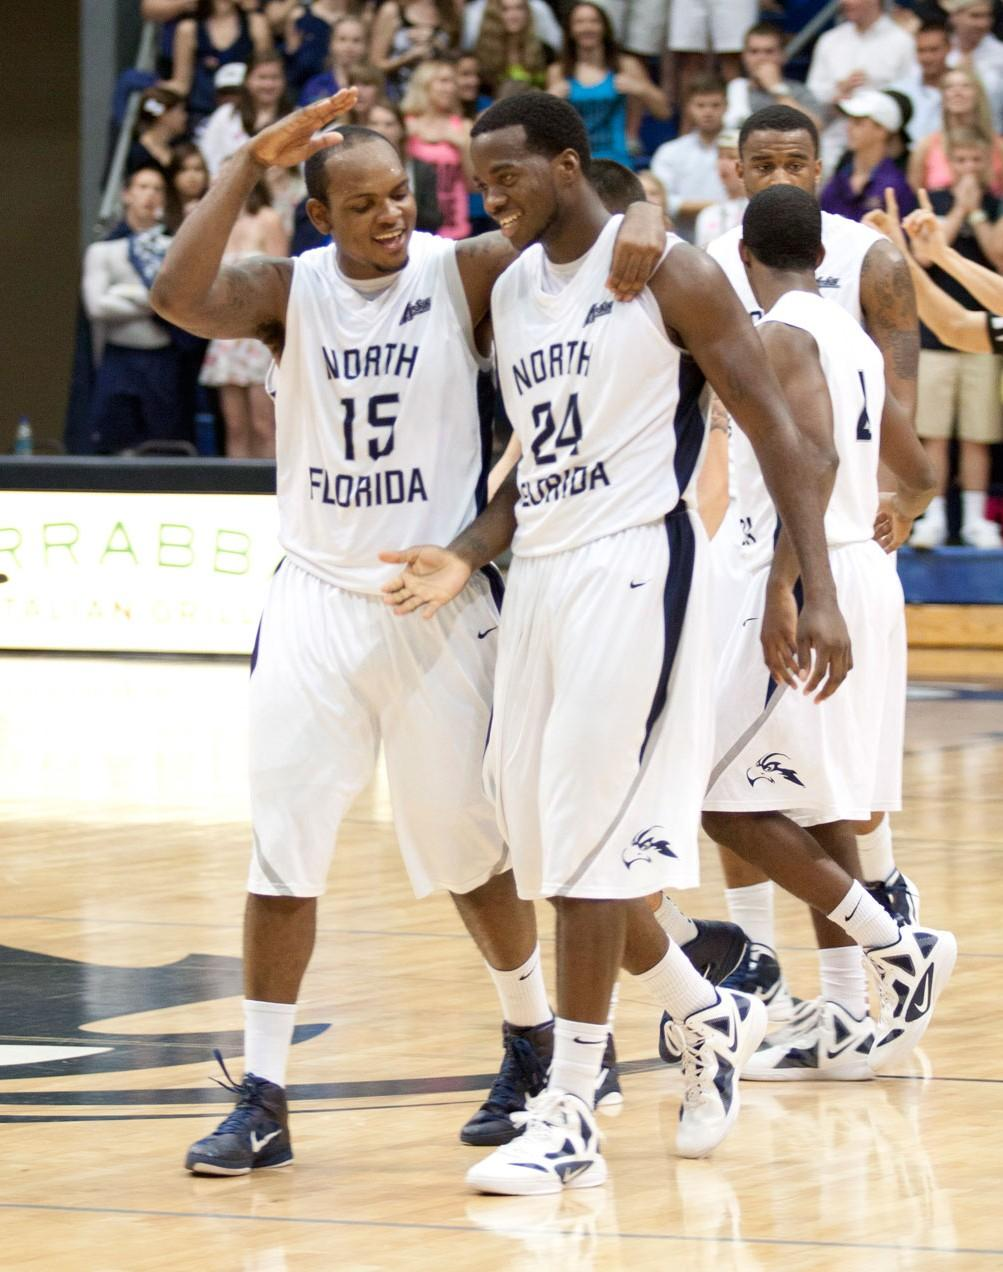 Photo credit: Andrew Noble Jerron Granberry (15) celebrates with teammate David Jeune (24).